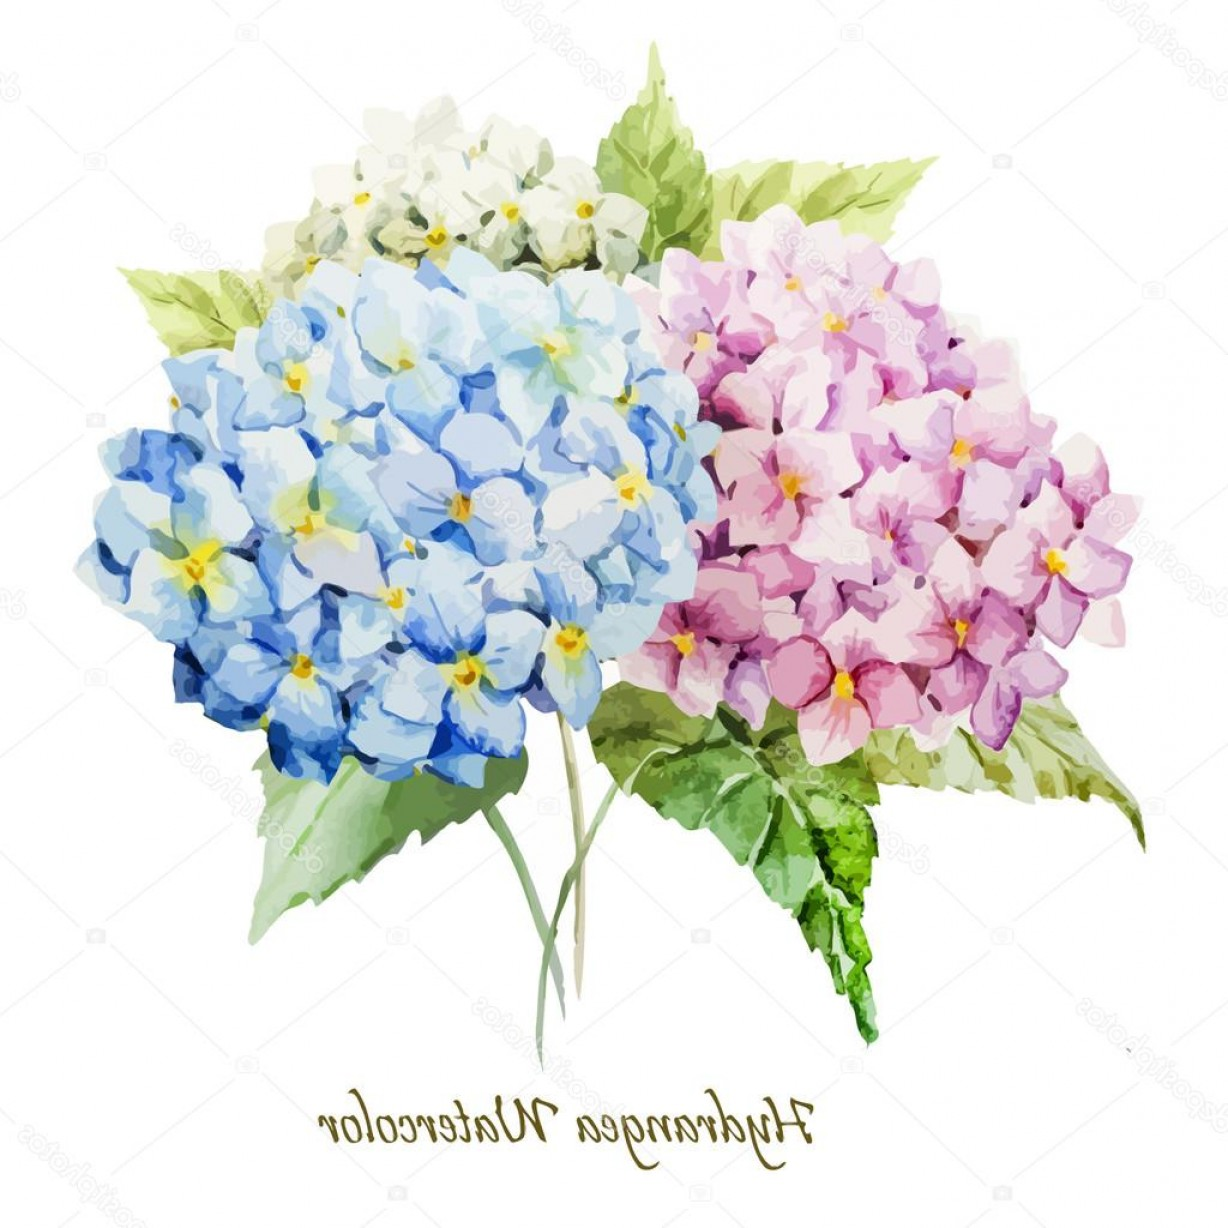 Hydrangea Vector Graphics: Stock Illustration Watercolor Hydrangea Flowers Bouquet